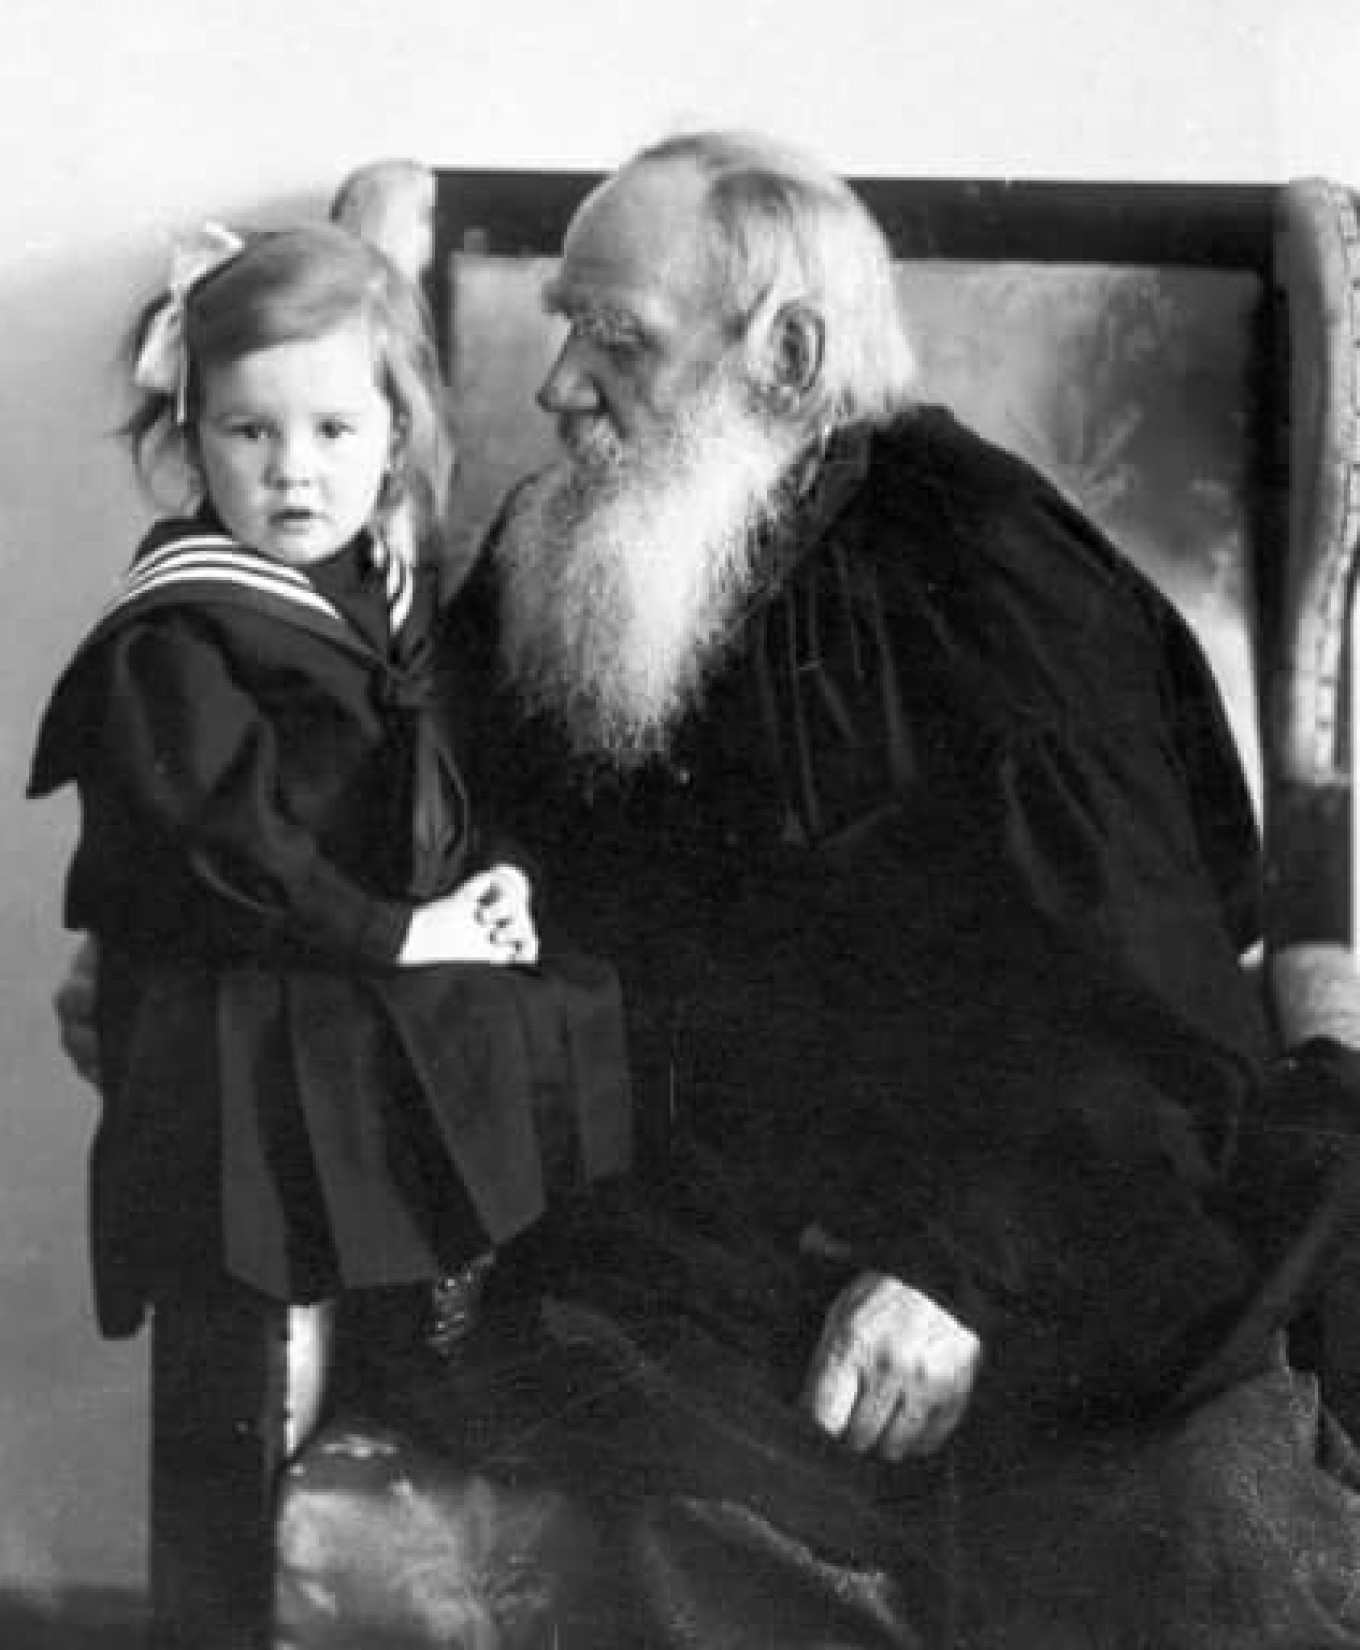 Lev Tolstoy with his granddaughter, Tatyana Sukhotina  Provided by Tolstoy Museum